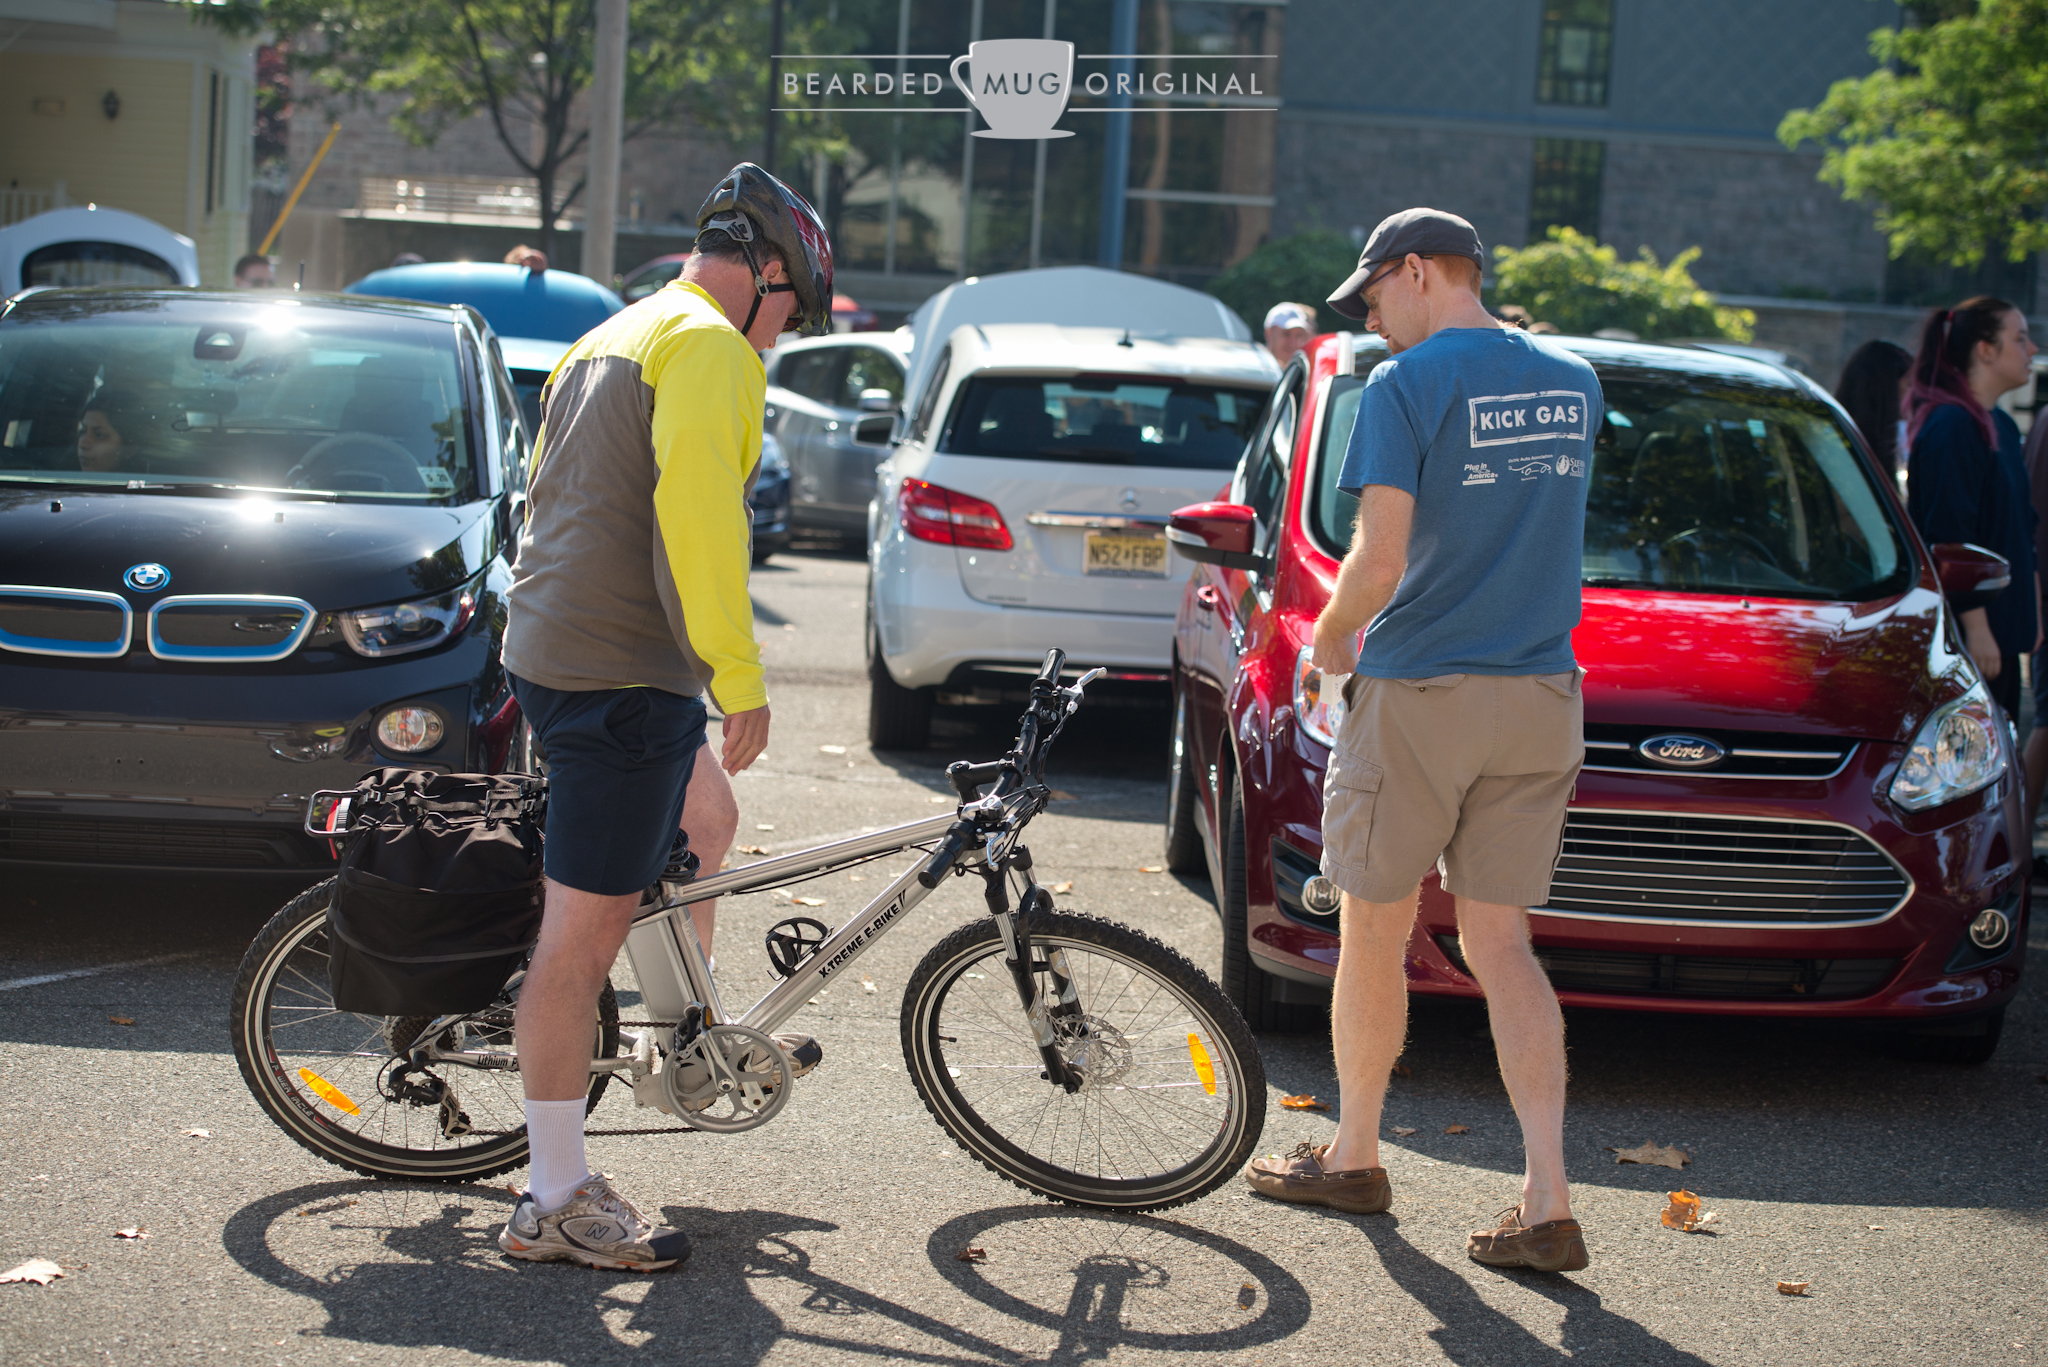 Alex Brown chats with a passing cyclist, who happened to be riding an electric bicycle.